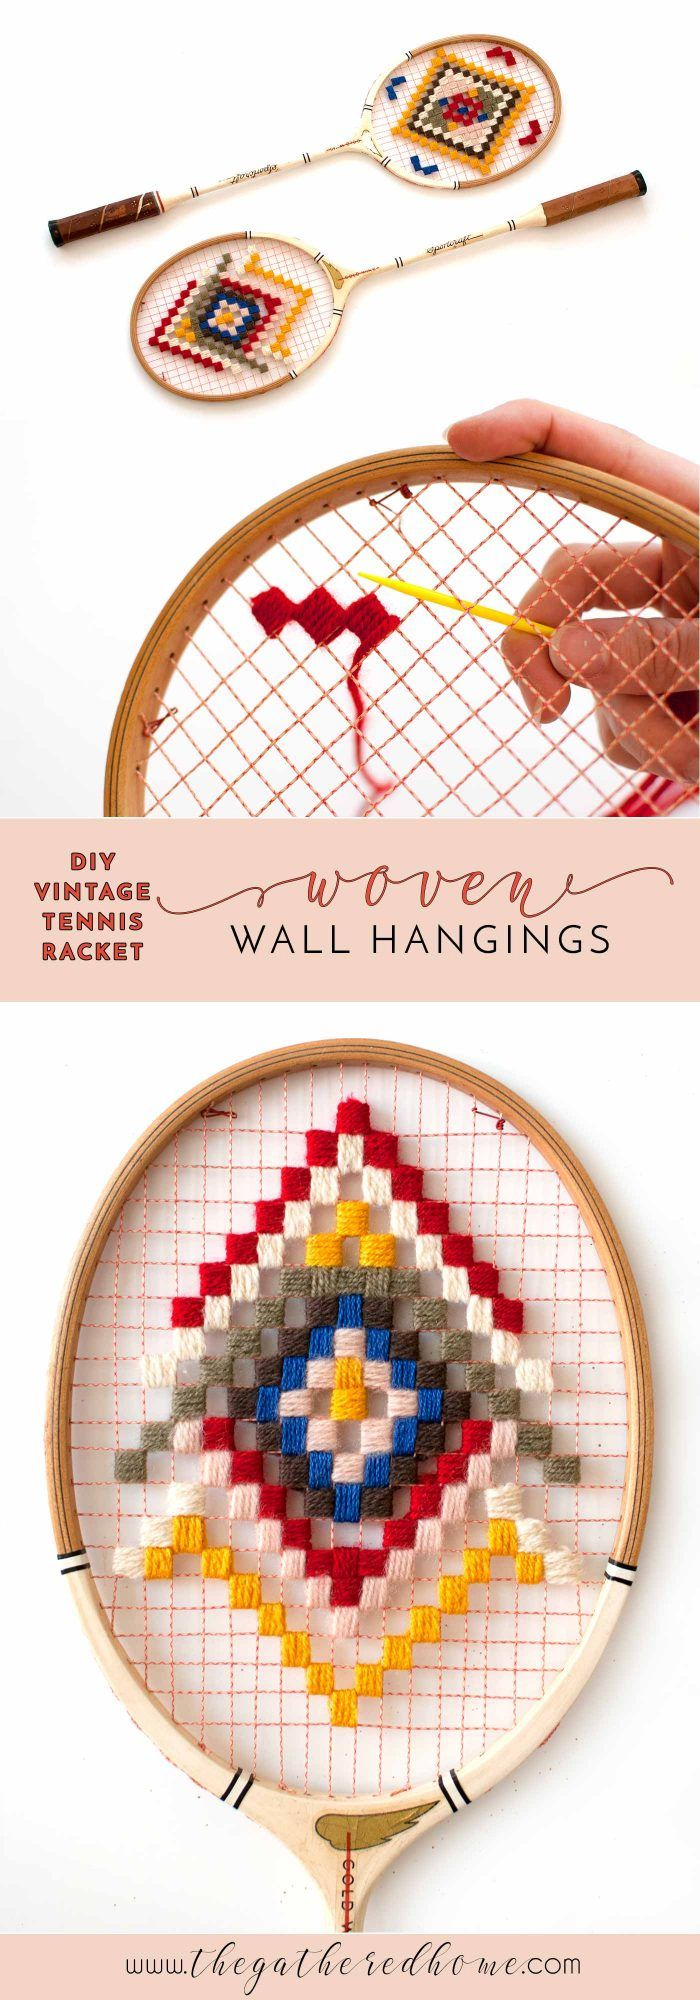 Thrifted vintage tennis rackets meet colorful yarn in this easy craft inspired by the wonderful world of Wes Anderson. Richie Tenenbaum approved.